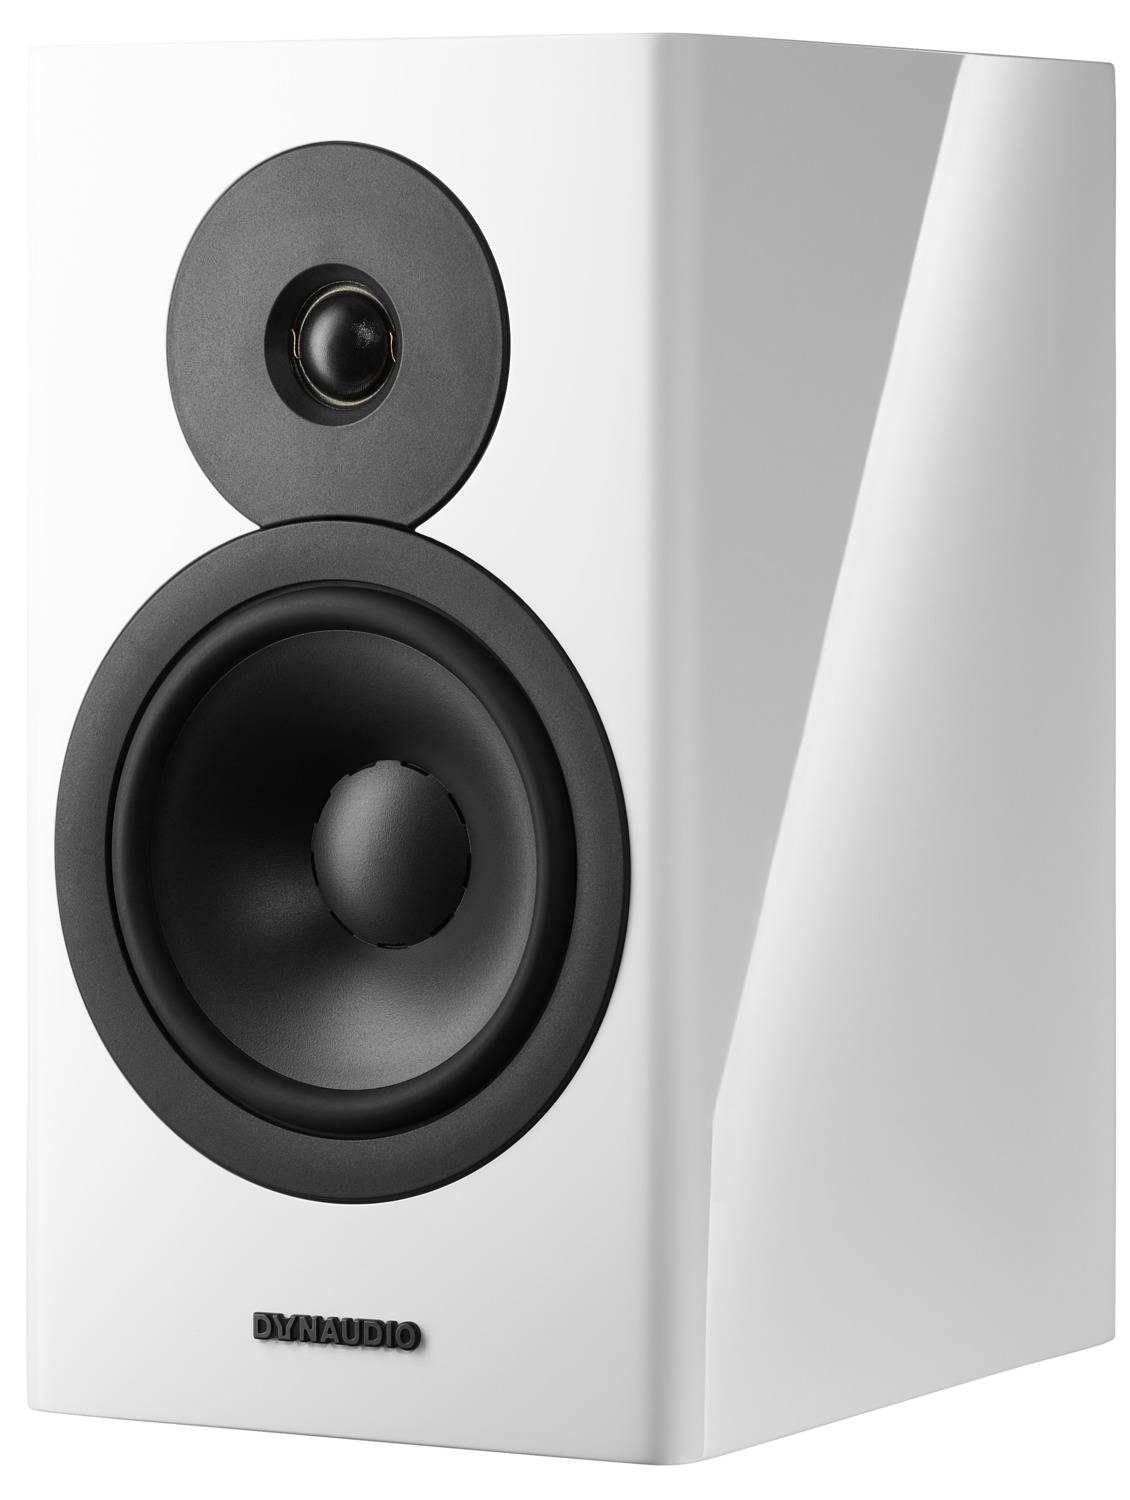 Evoke 20 Evoke Serie Series Dynaudio Lautsprecher Speaker